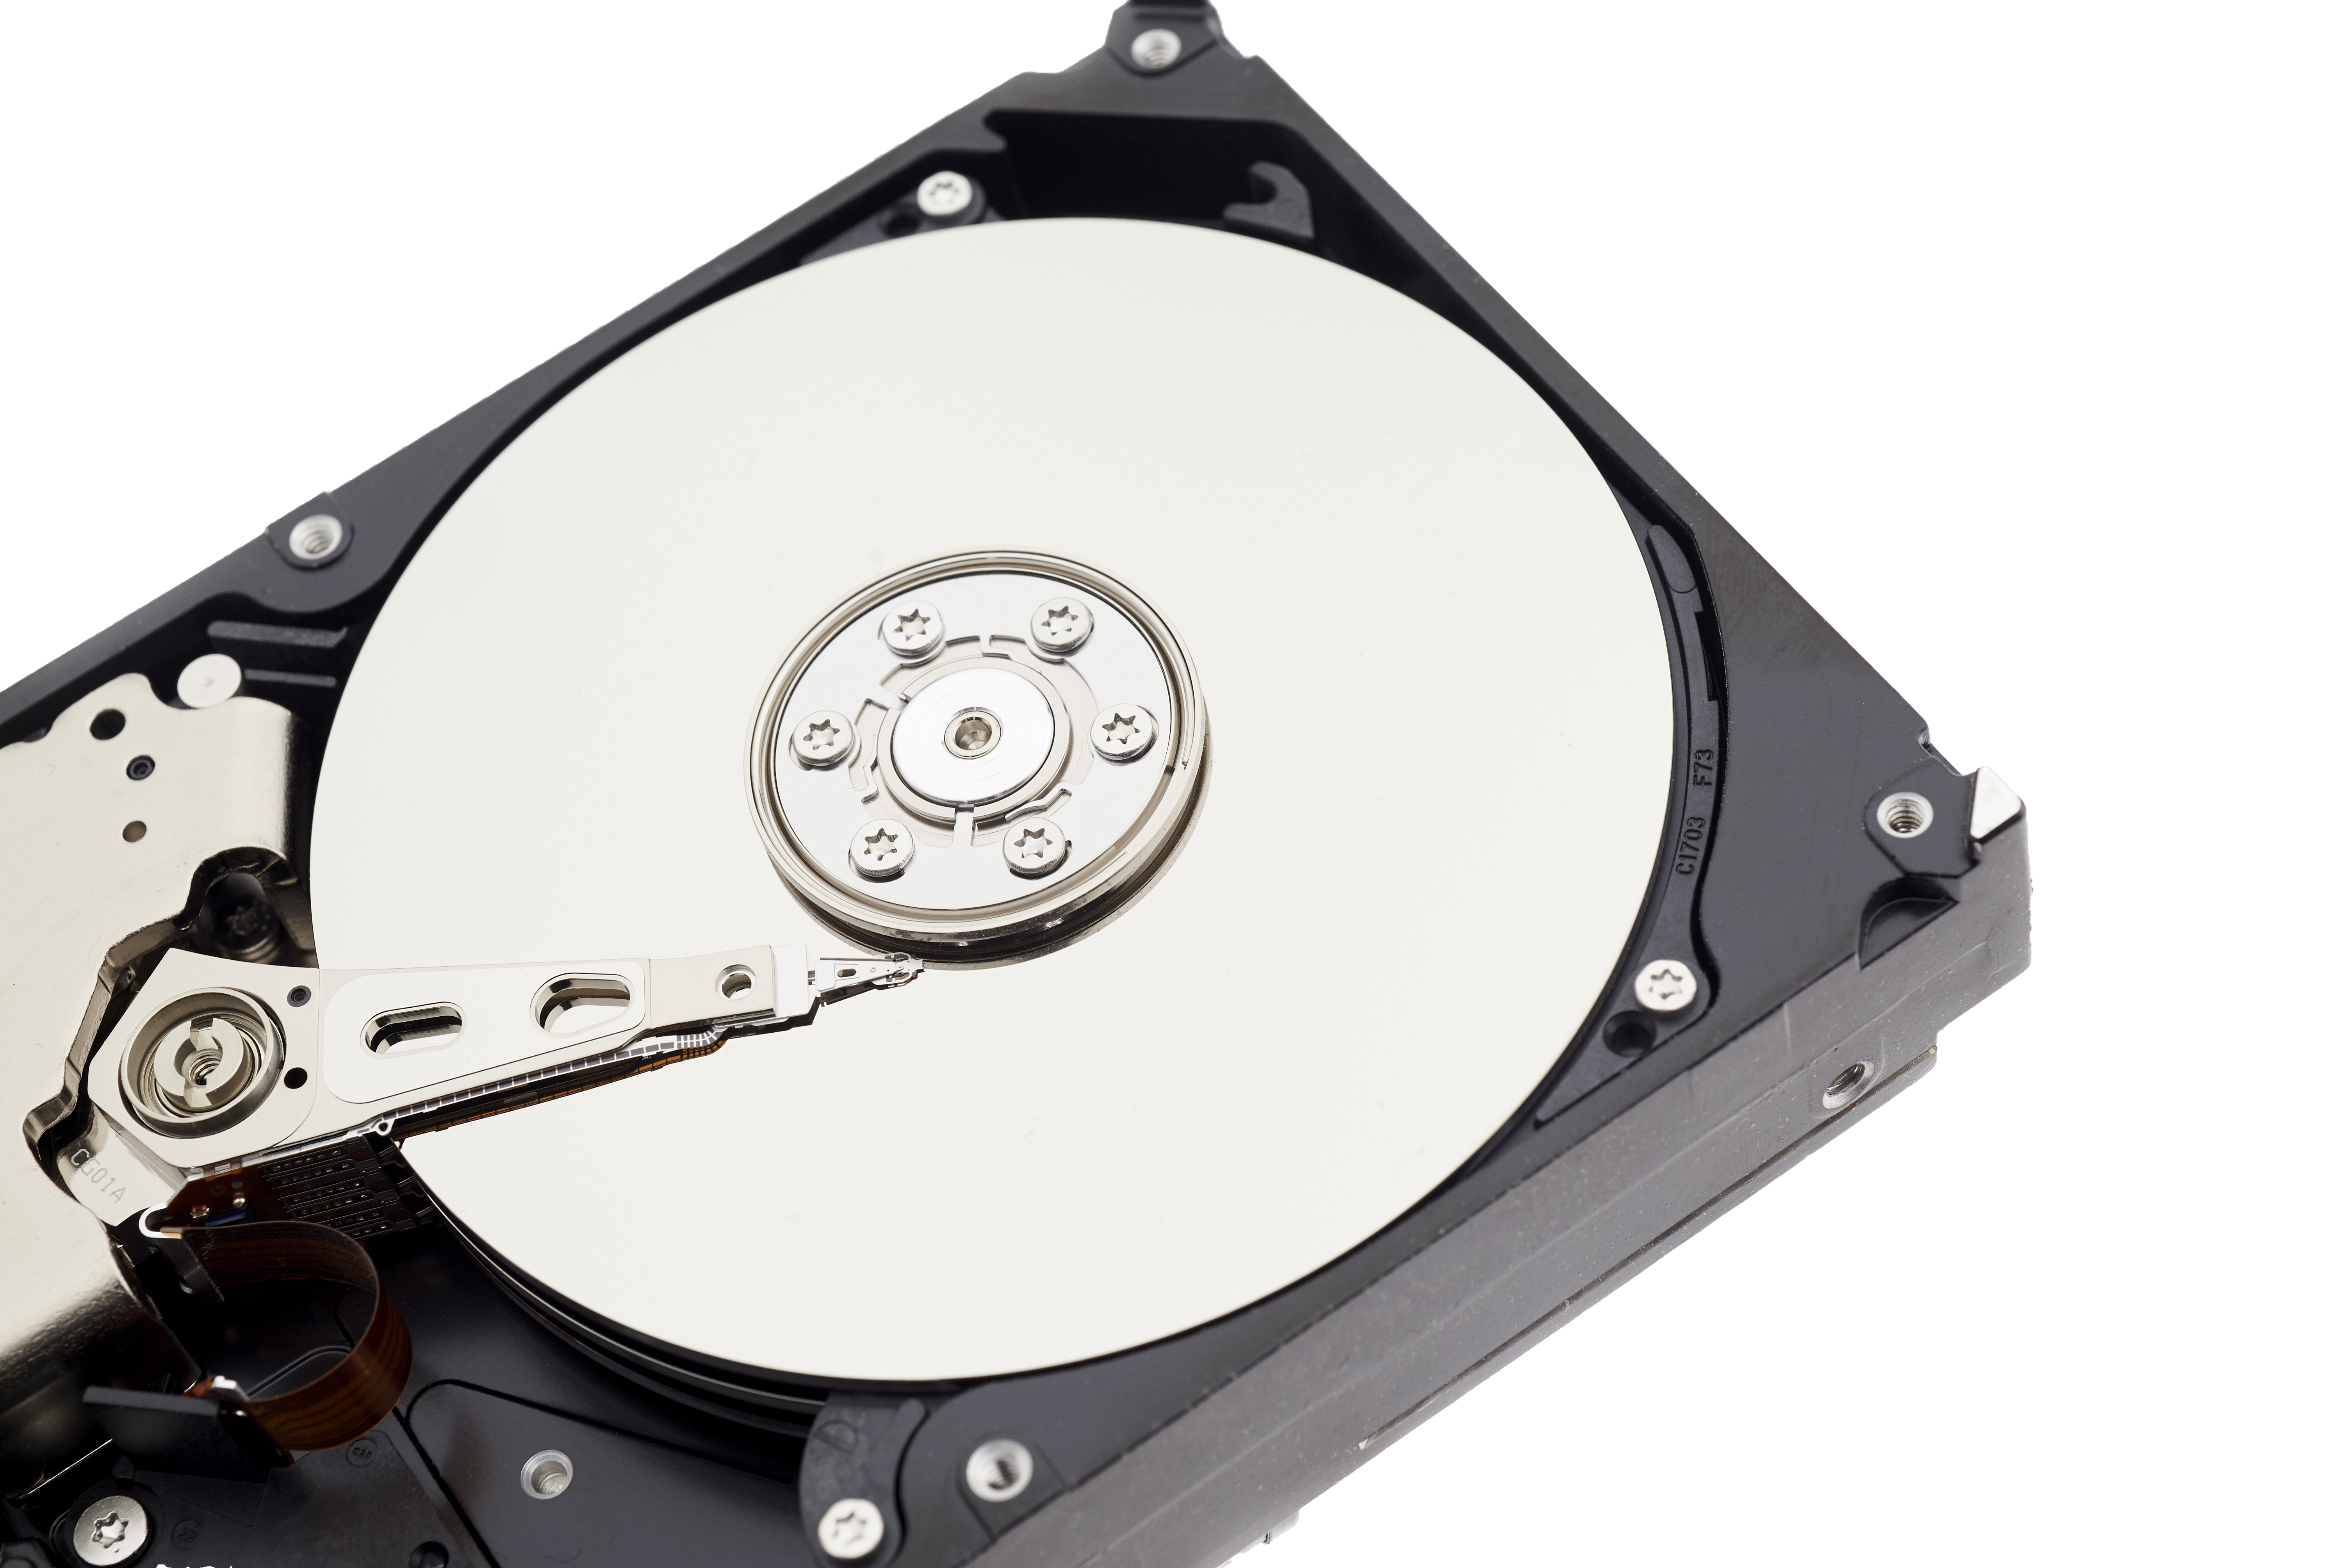 Open hard drive with platter visible